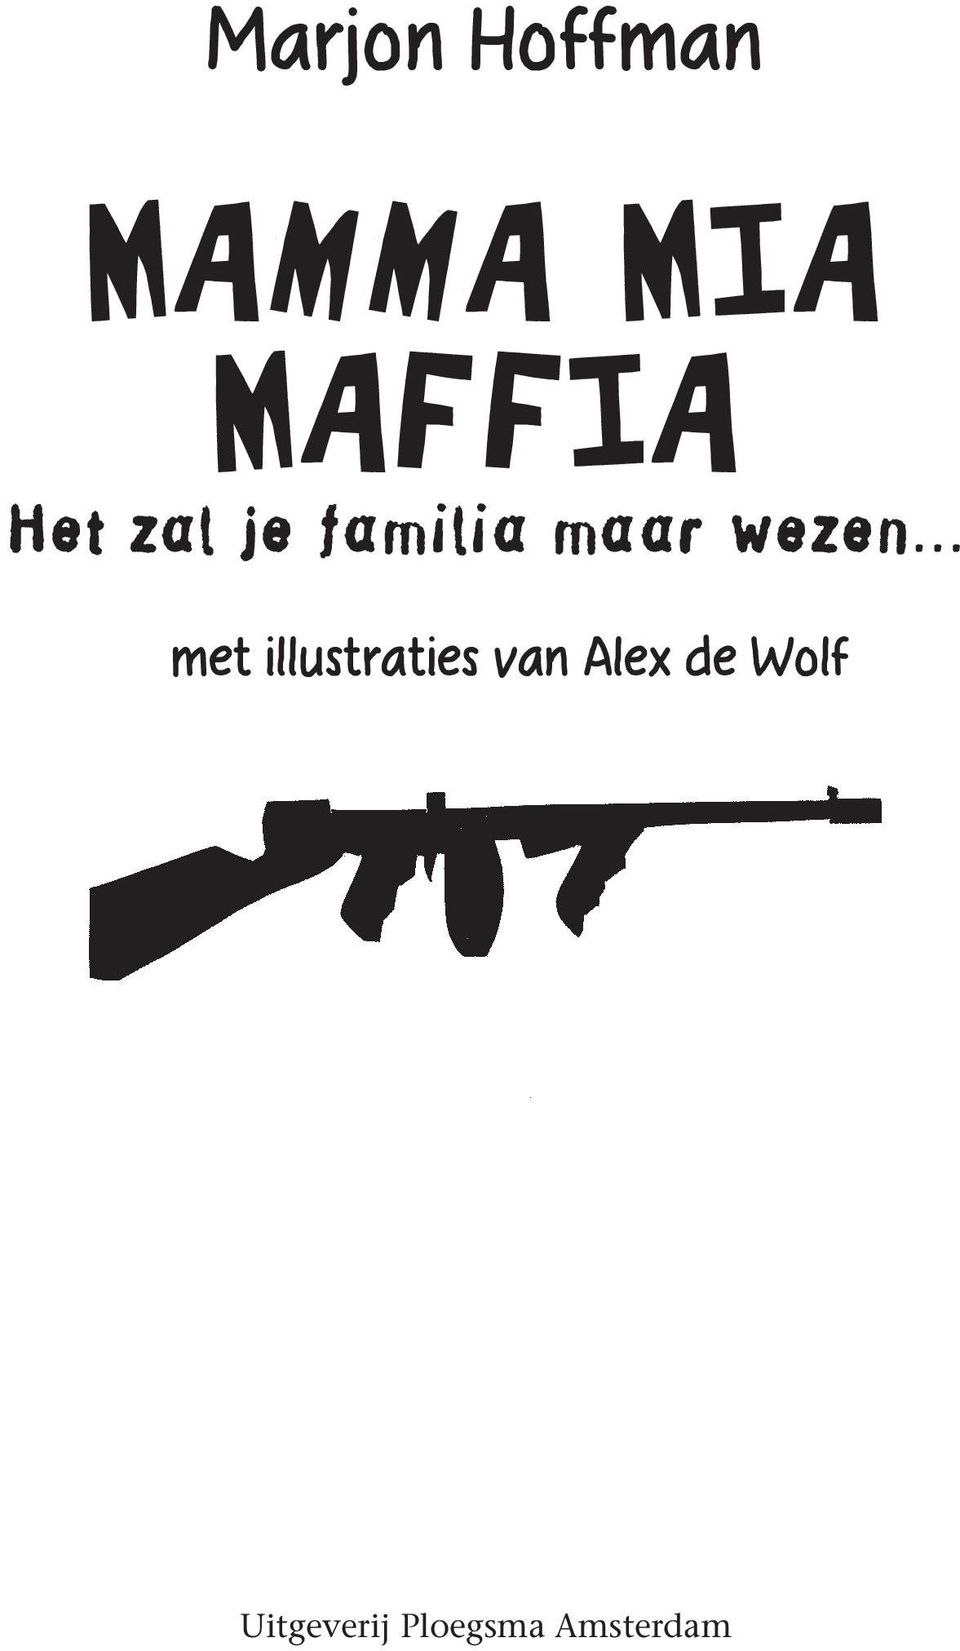 met illustraties van Alex de